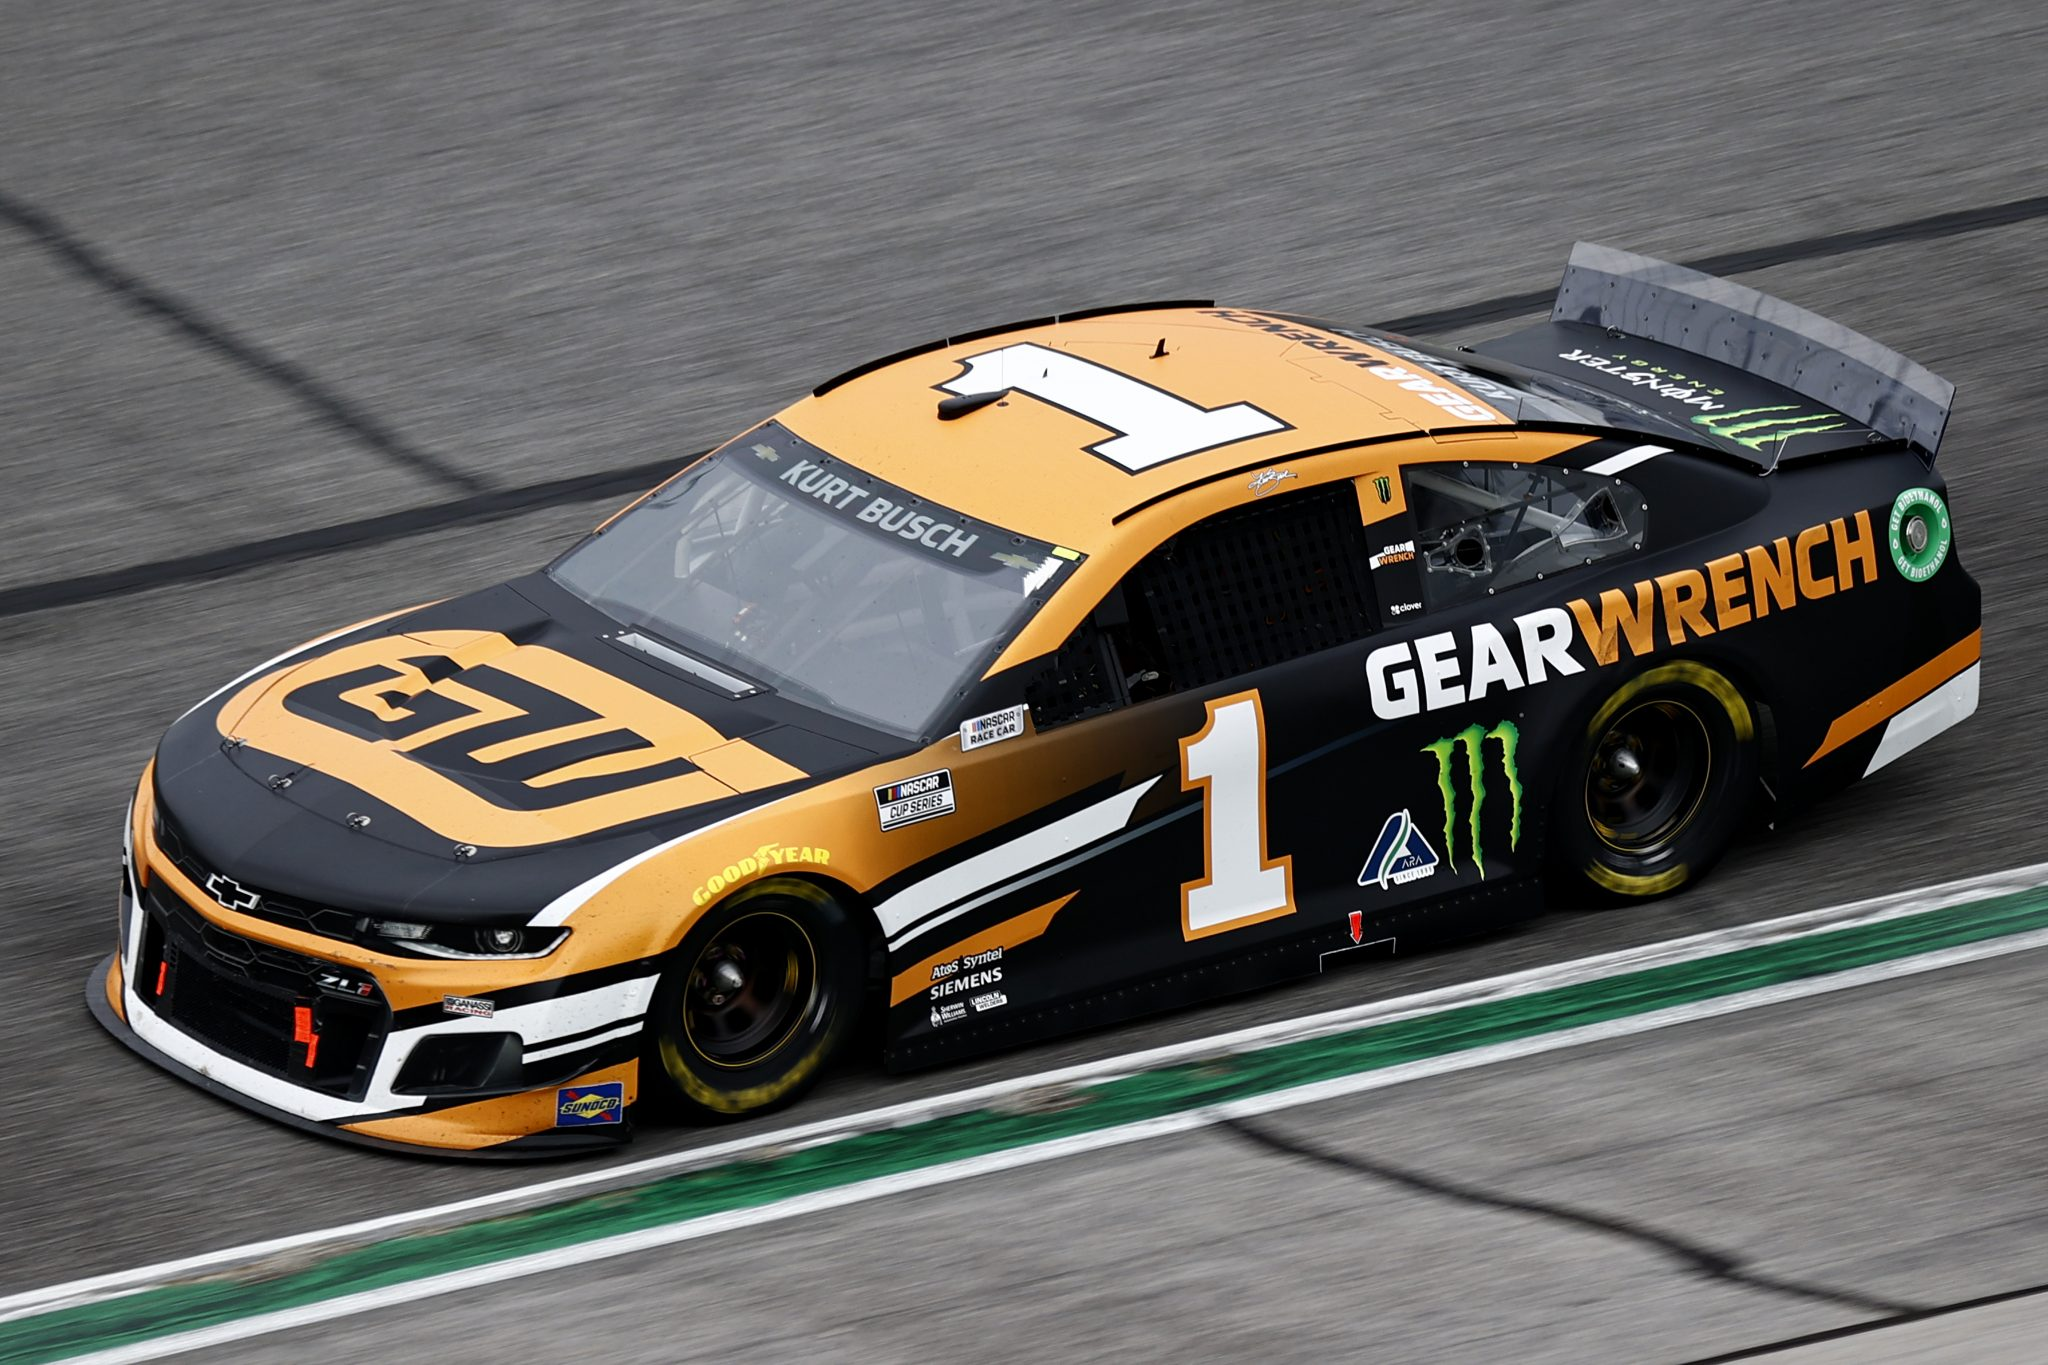 HAMPTON, GEORGIA - JULY 11: Kurt Busch, driver of the #1 GEARWRENCH Chevrolet, drives during the NASCAR Cup Series Quaker State 400 presented by Walmart at Atlanta Motor Speedway on July 11, 2021 in Hampton, Georgia. (Photo by Jared C. Tilton/Getty Images)   Getty Images